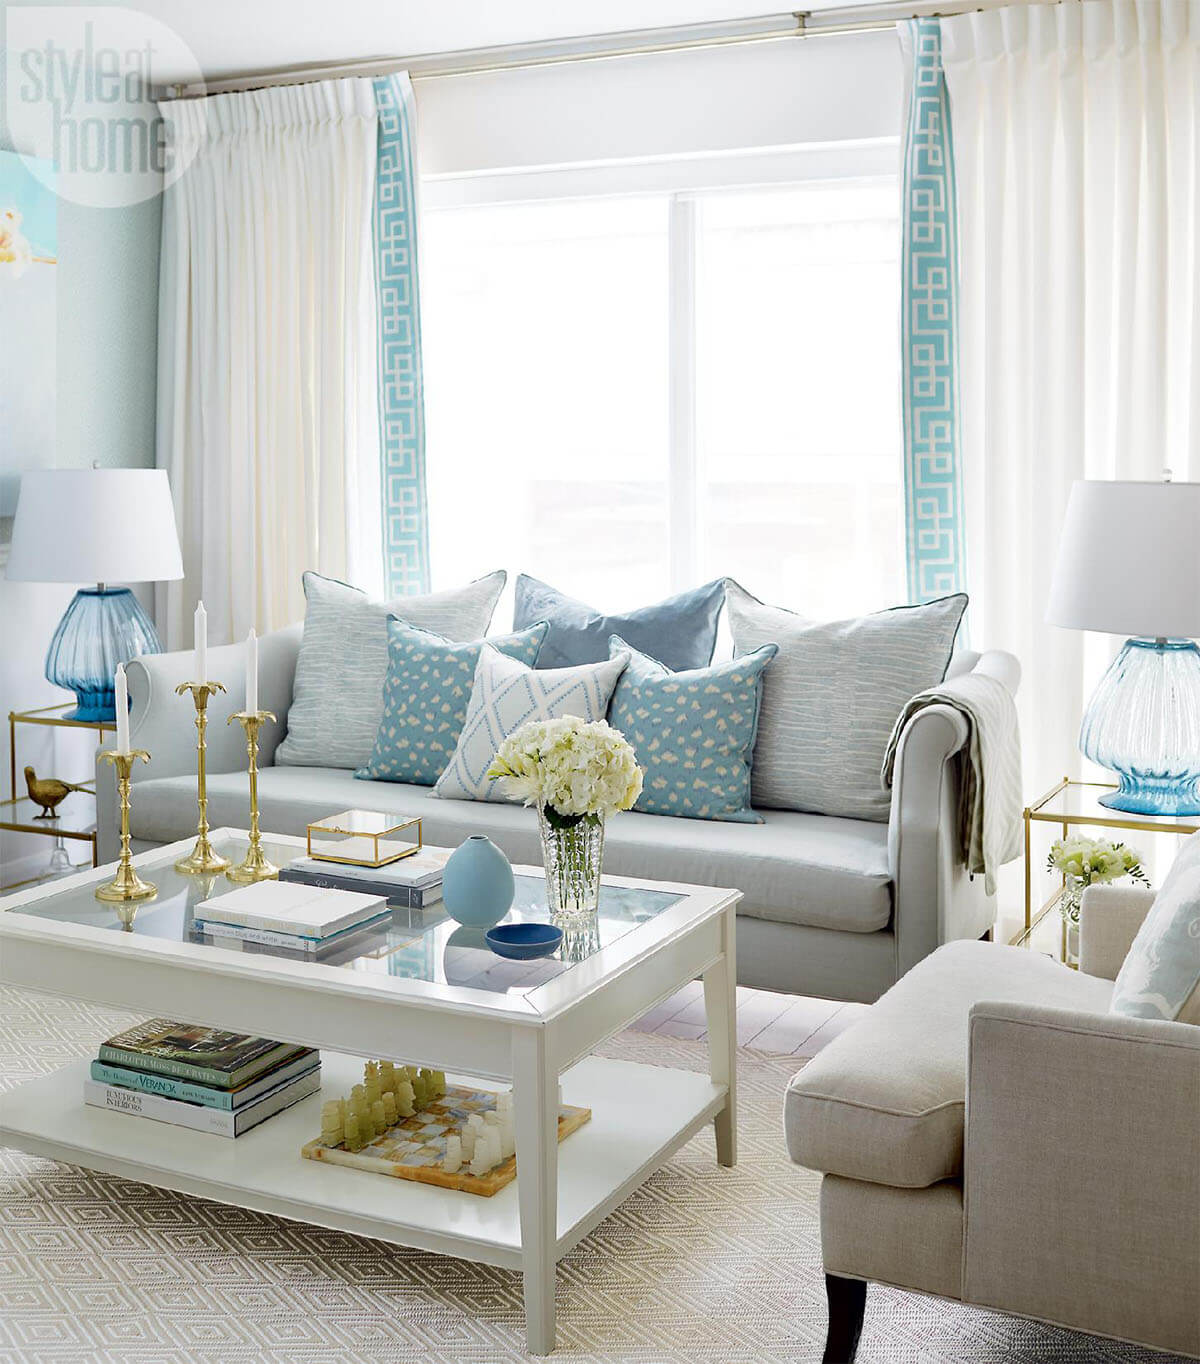 Blue Accents Against Warm Brown for a Summer Cottage Feel